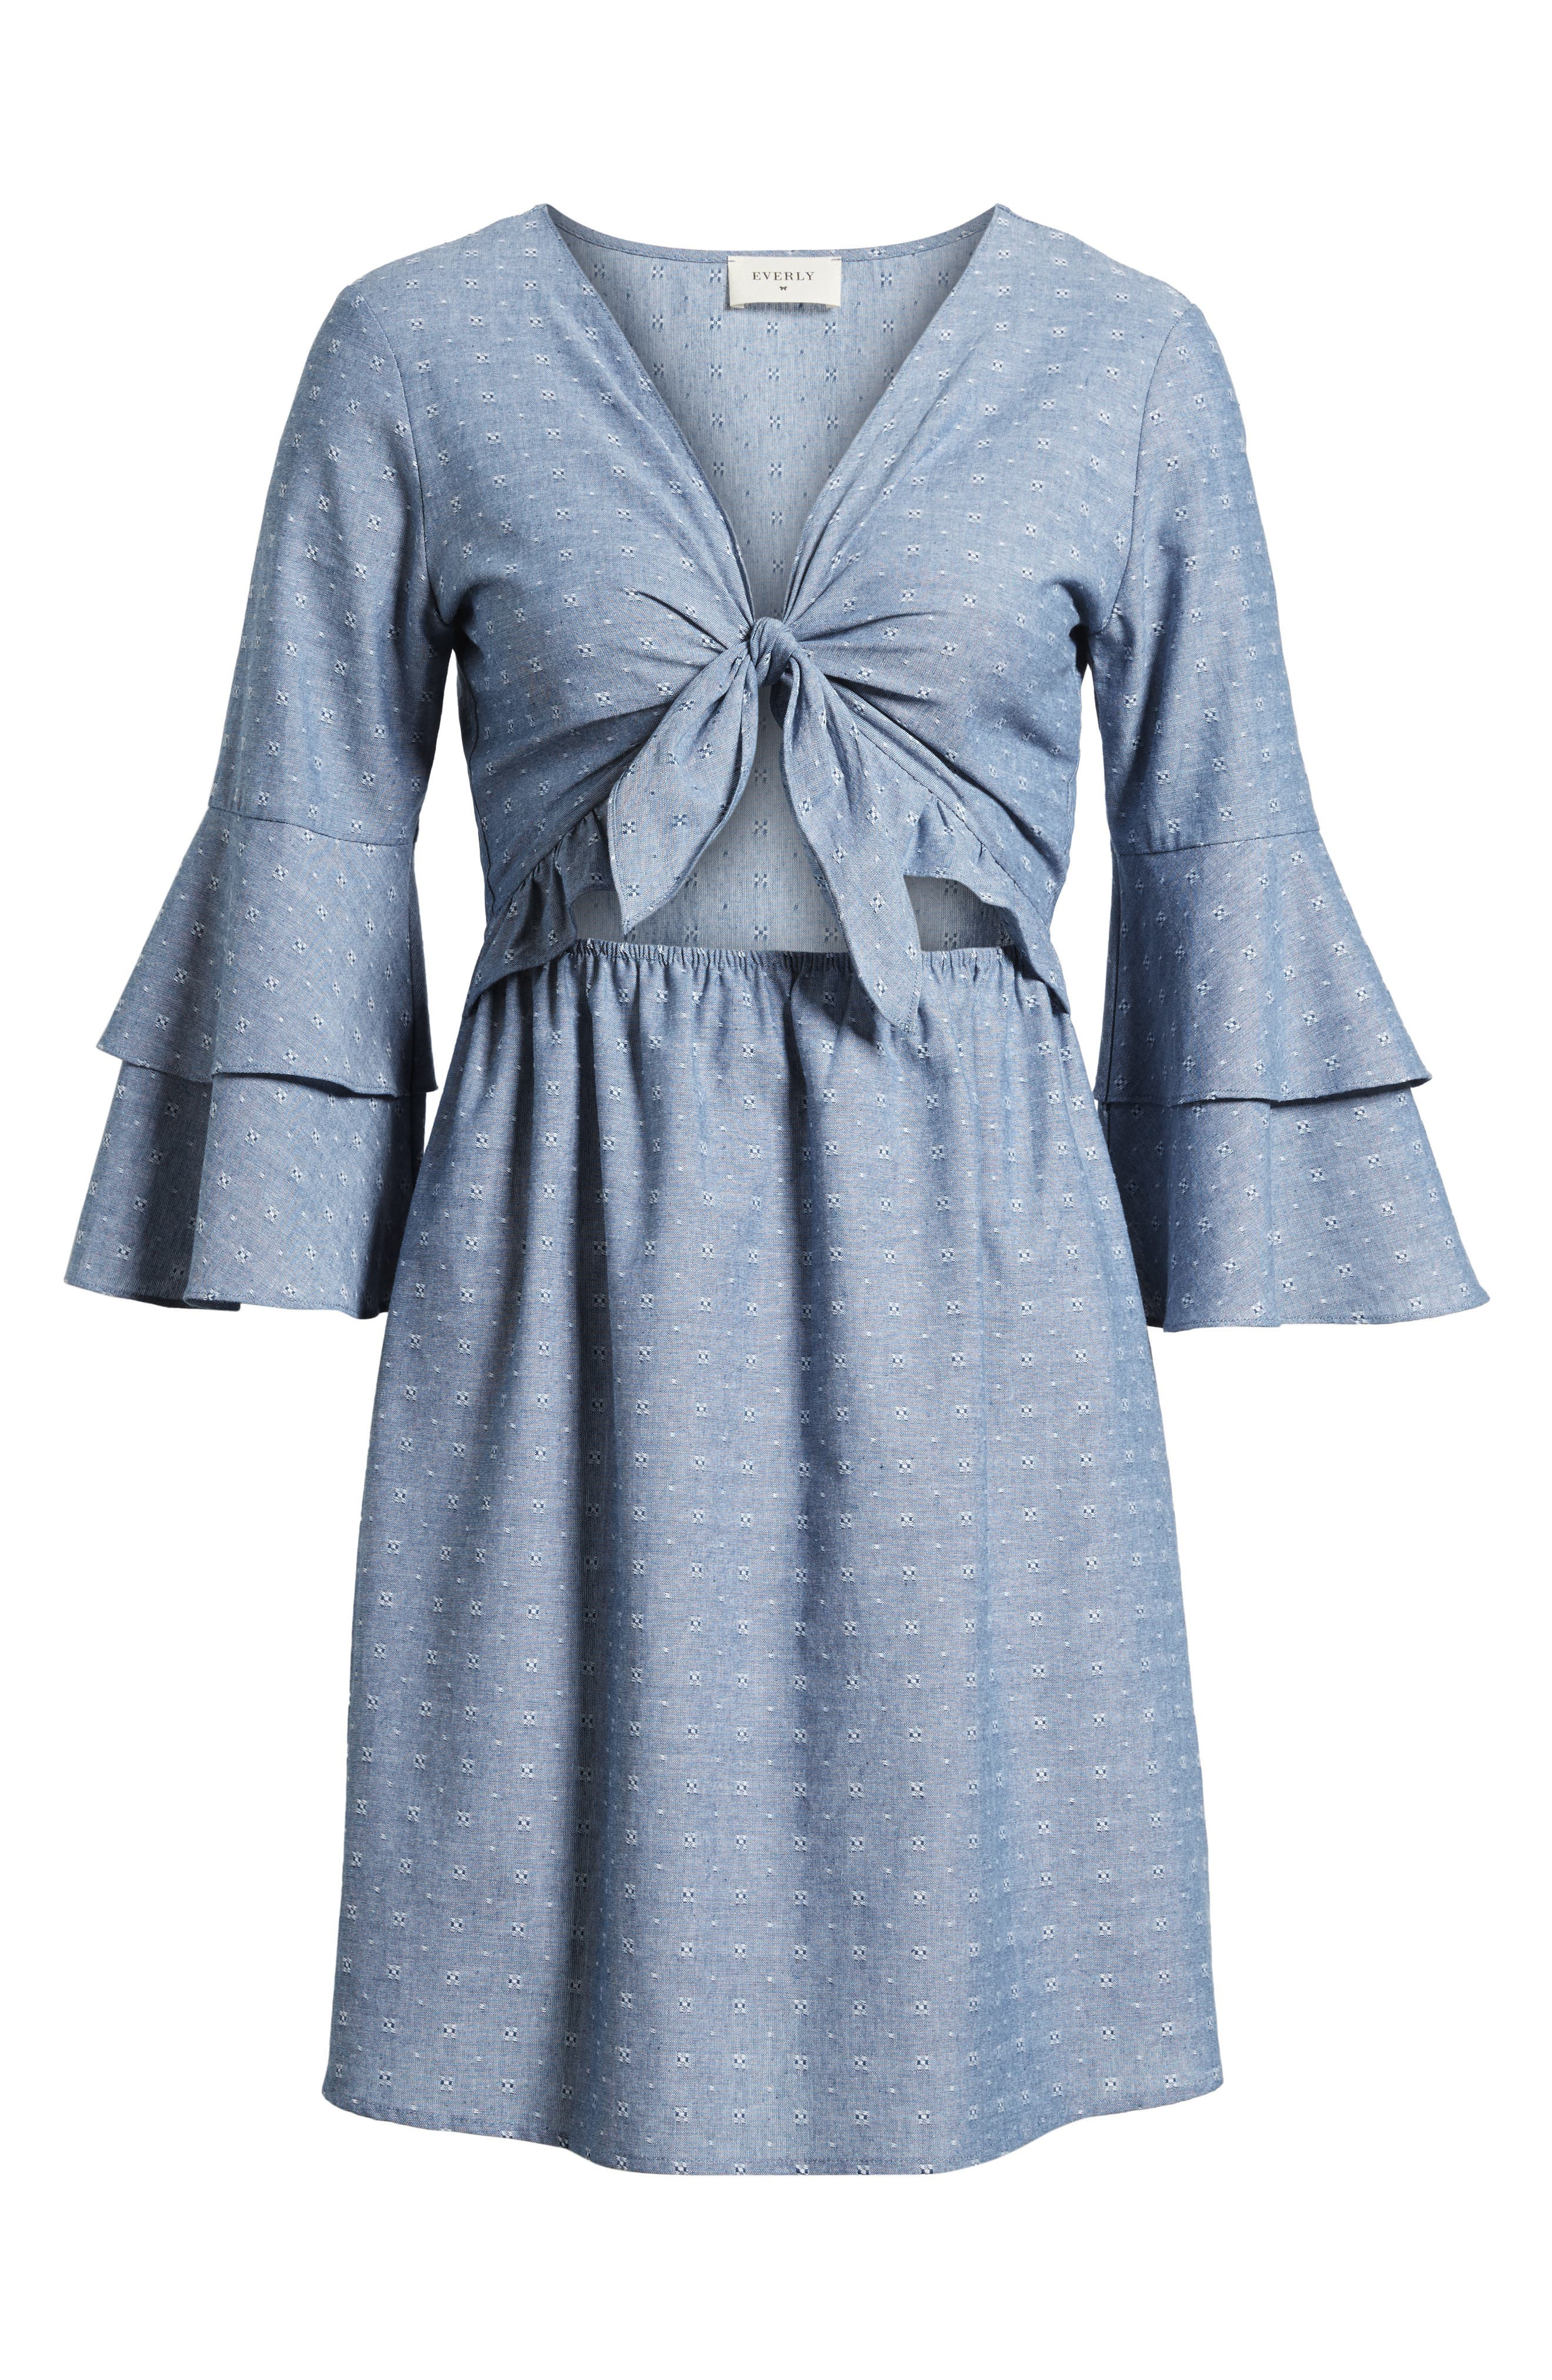 EVERLY,                             Cutout Tiered Sleeve Dress,                             Alternate thumbnail 7, color,                             400